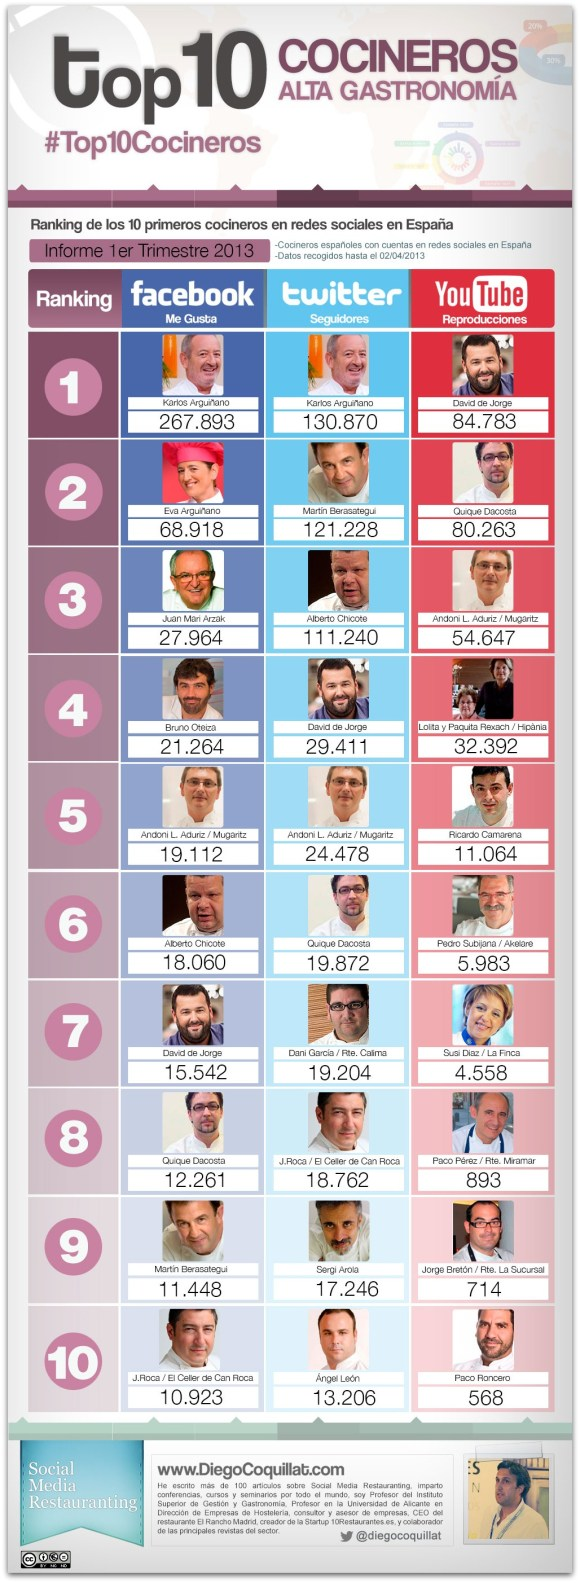 Ranking best chefs in social networks in Spain 2013